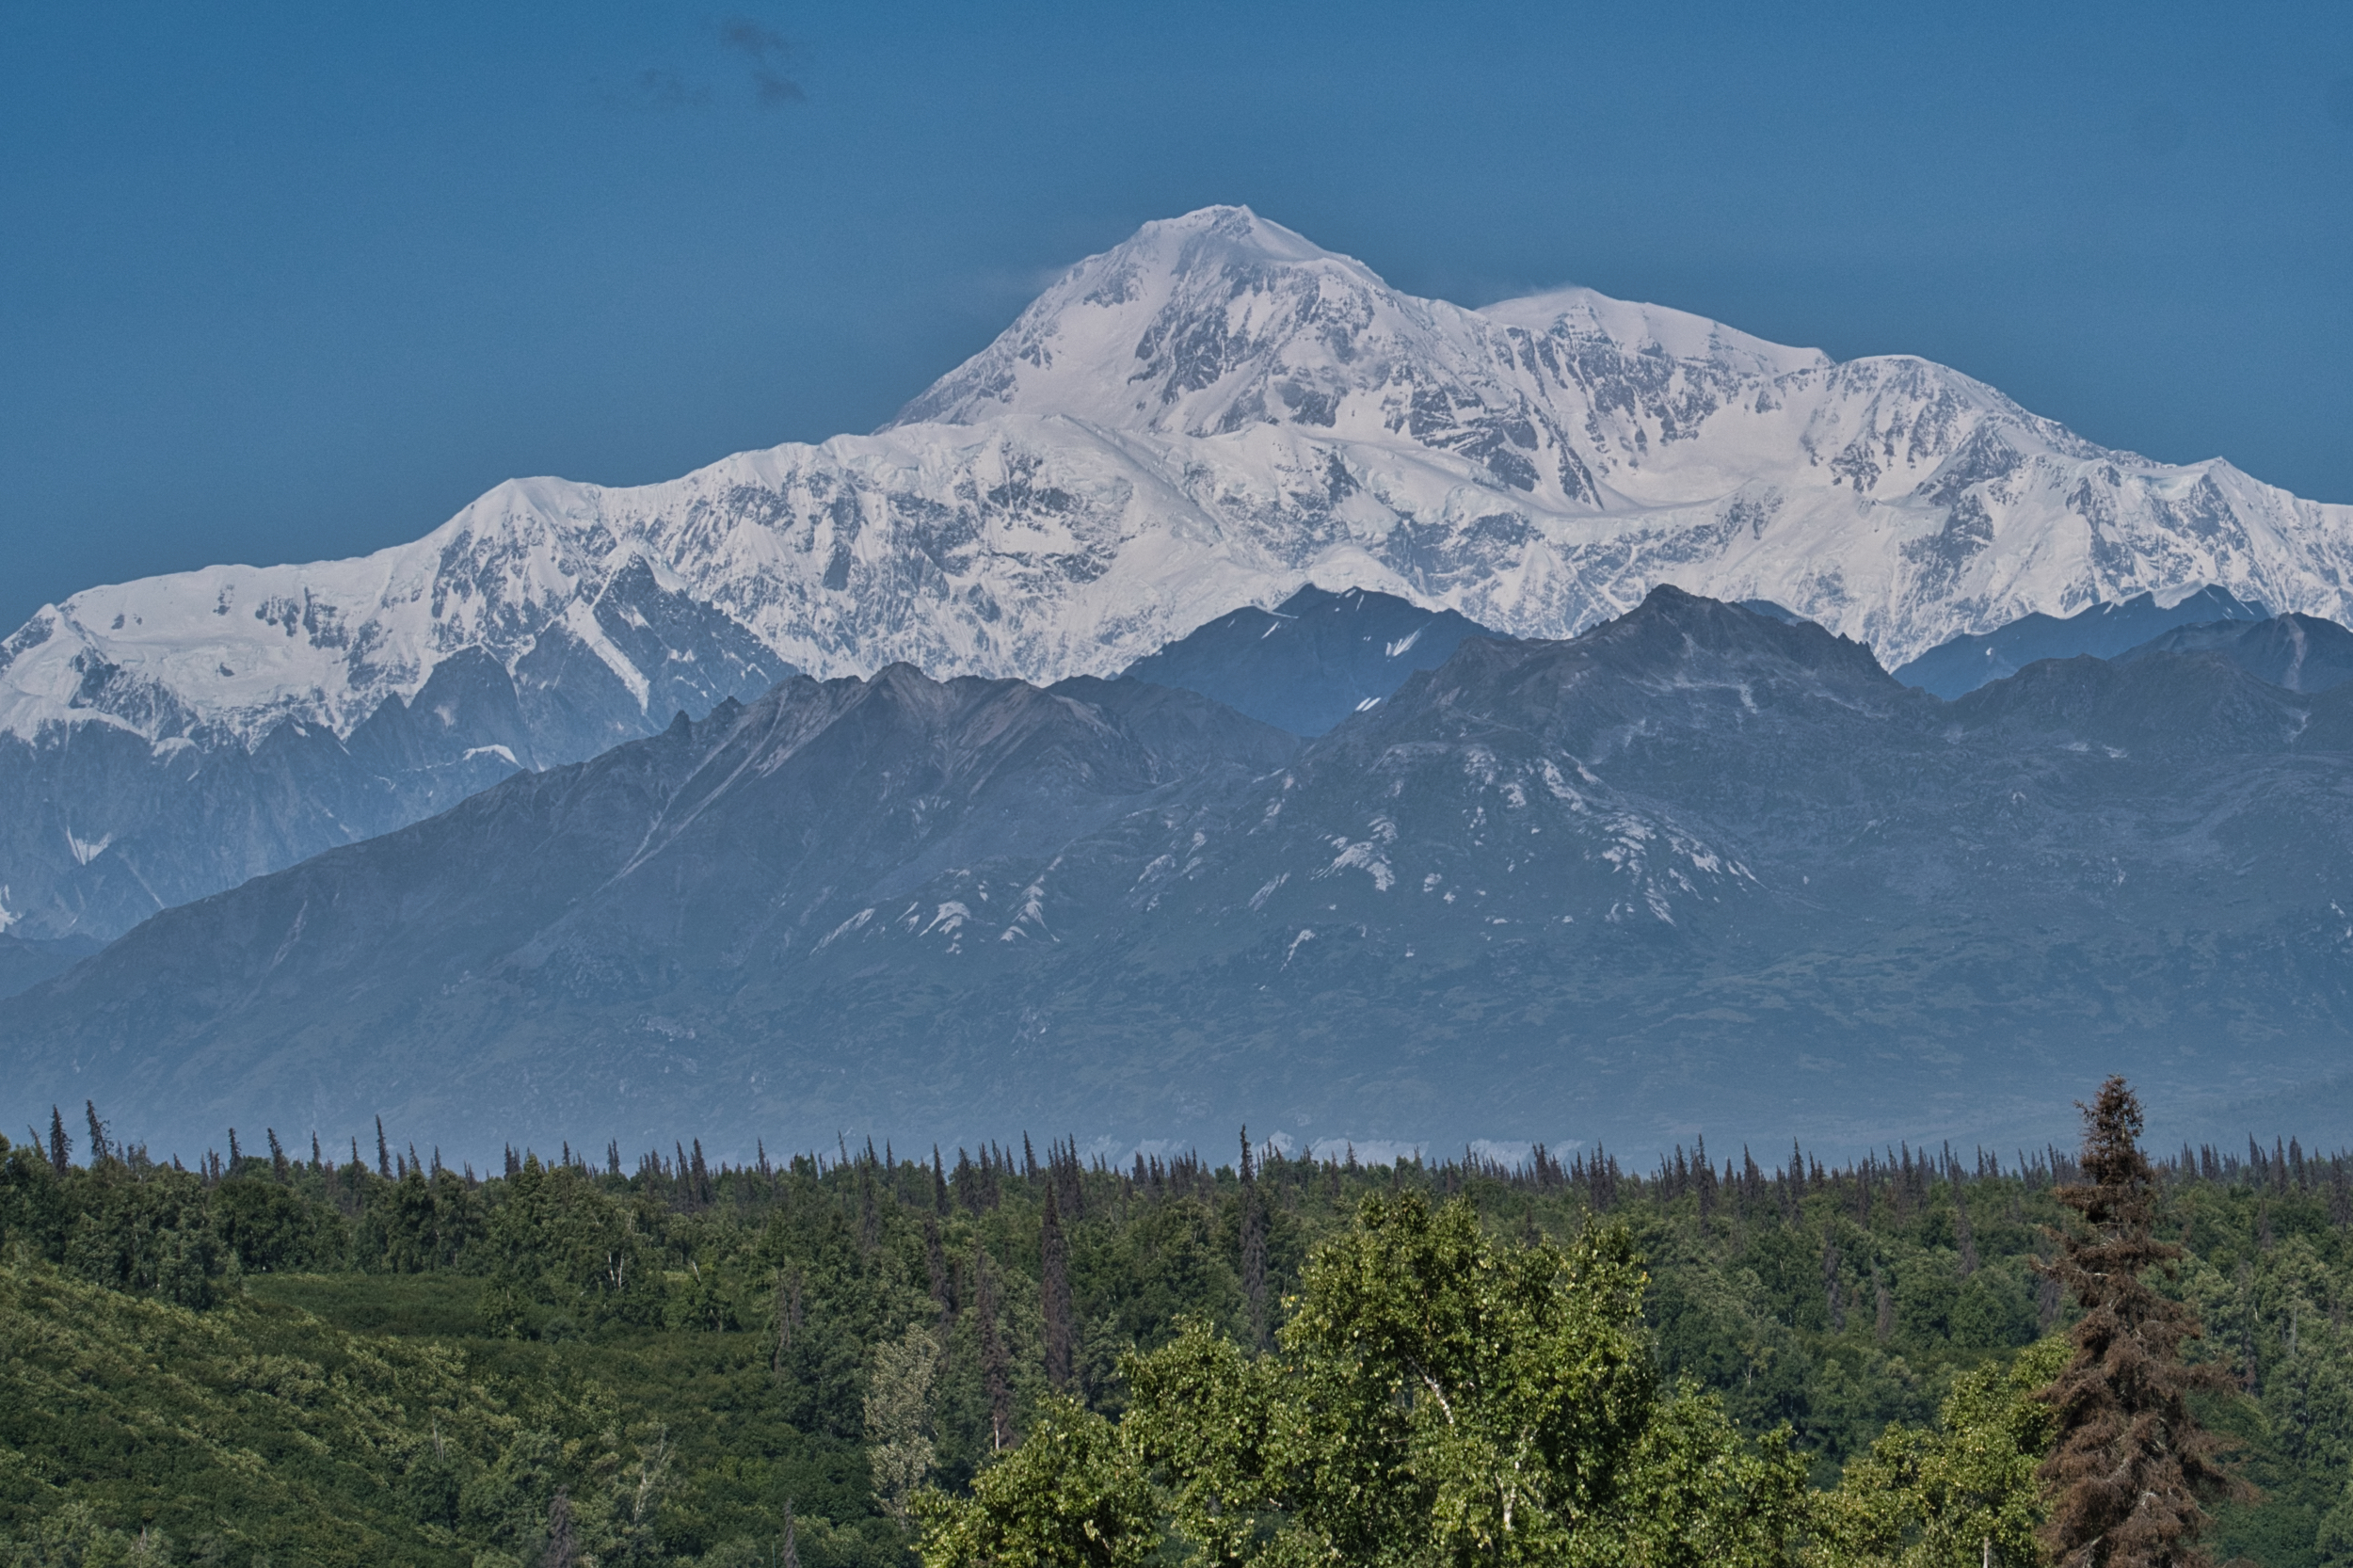 Our first full view of Denali but it gets better!